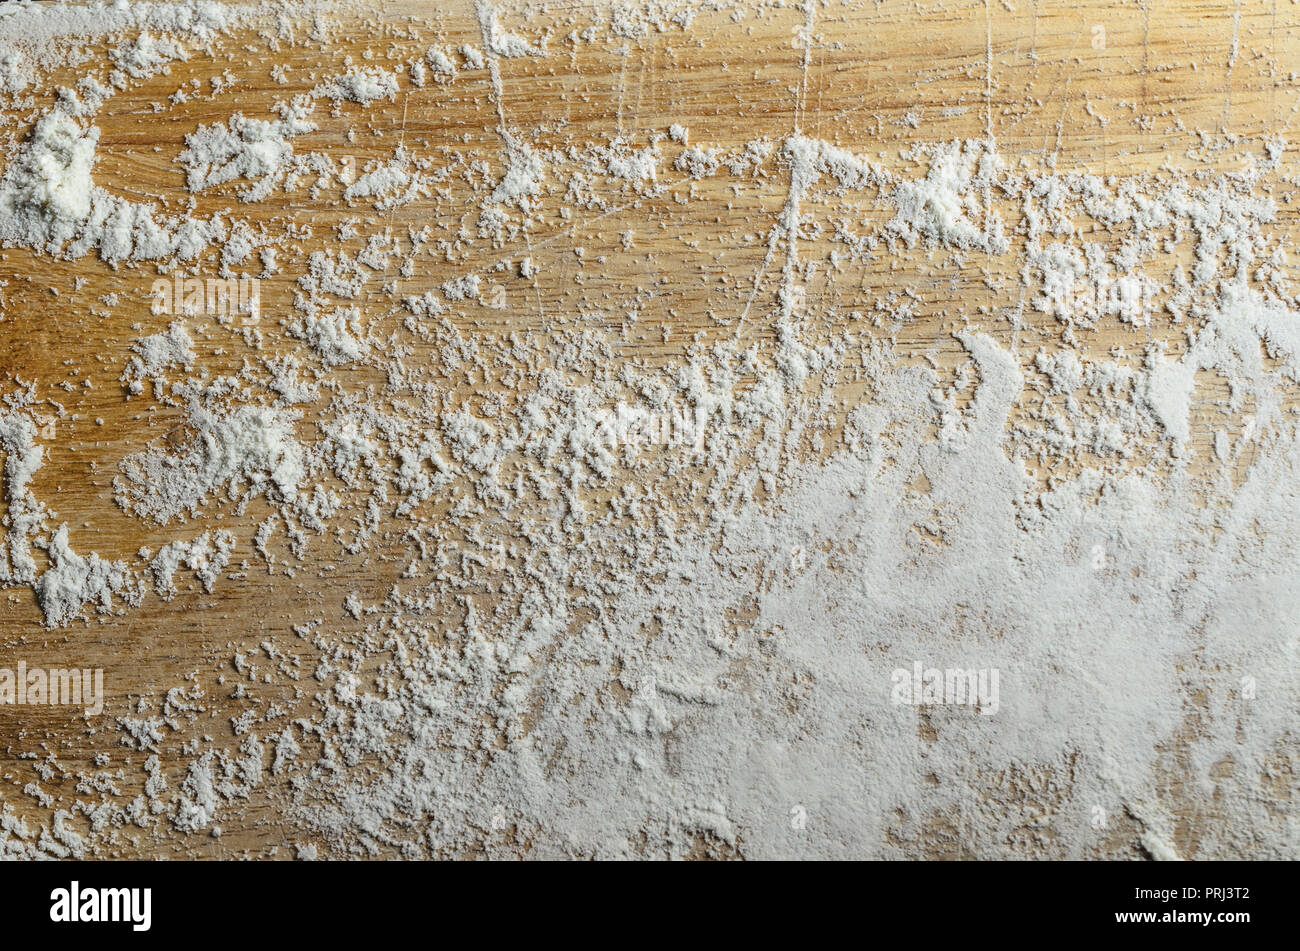 Overhead shot of an old, scratched wooden chopping board, dusted with a sprinkling of white flour. - Stock Image